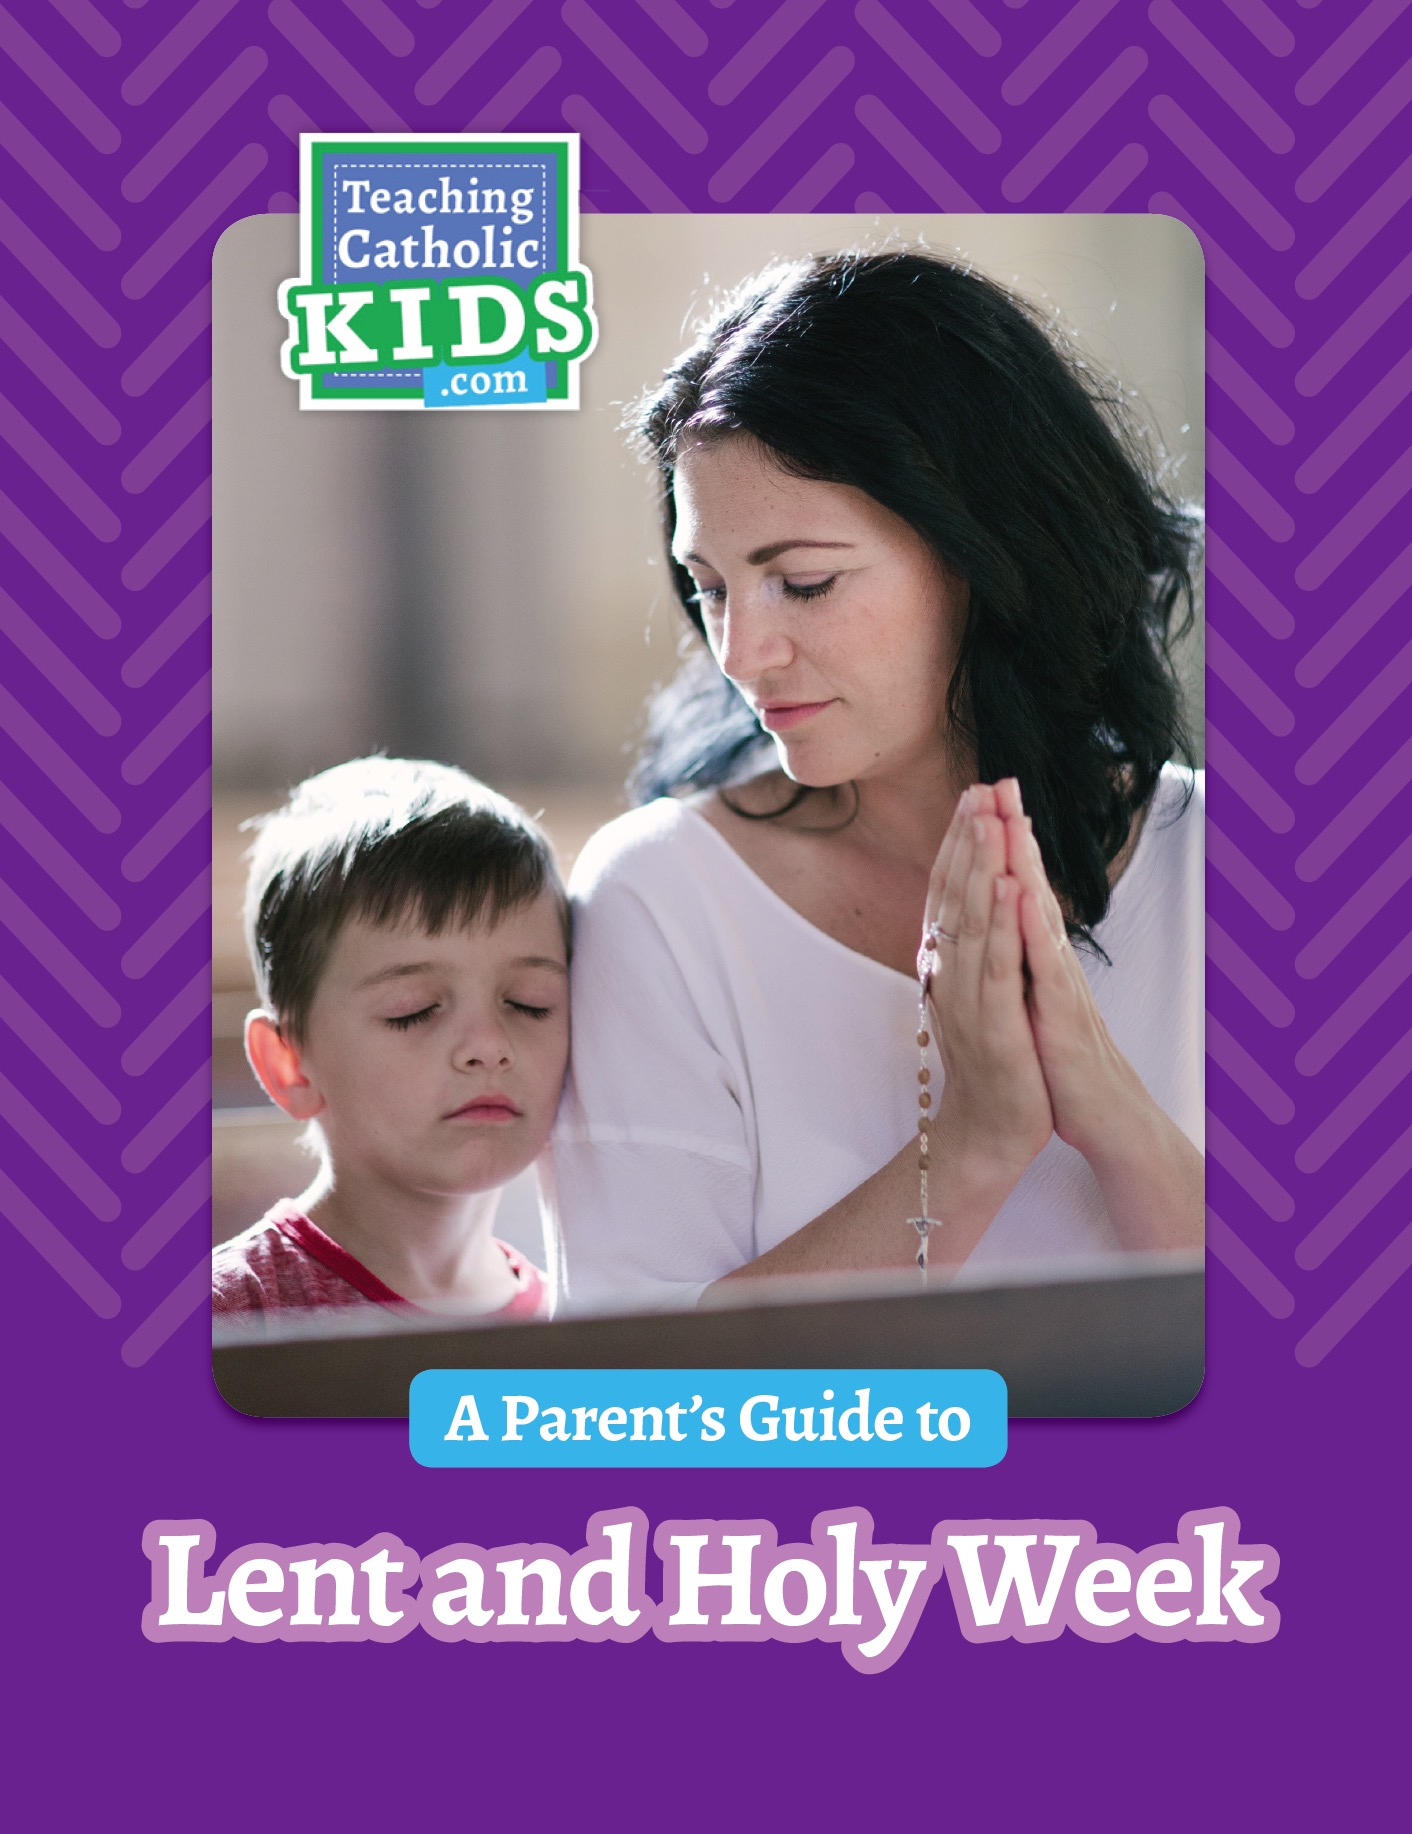 Parent's Guide to Lent and Holy Week from Teaching Catholic Kids